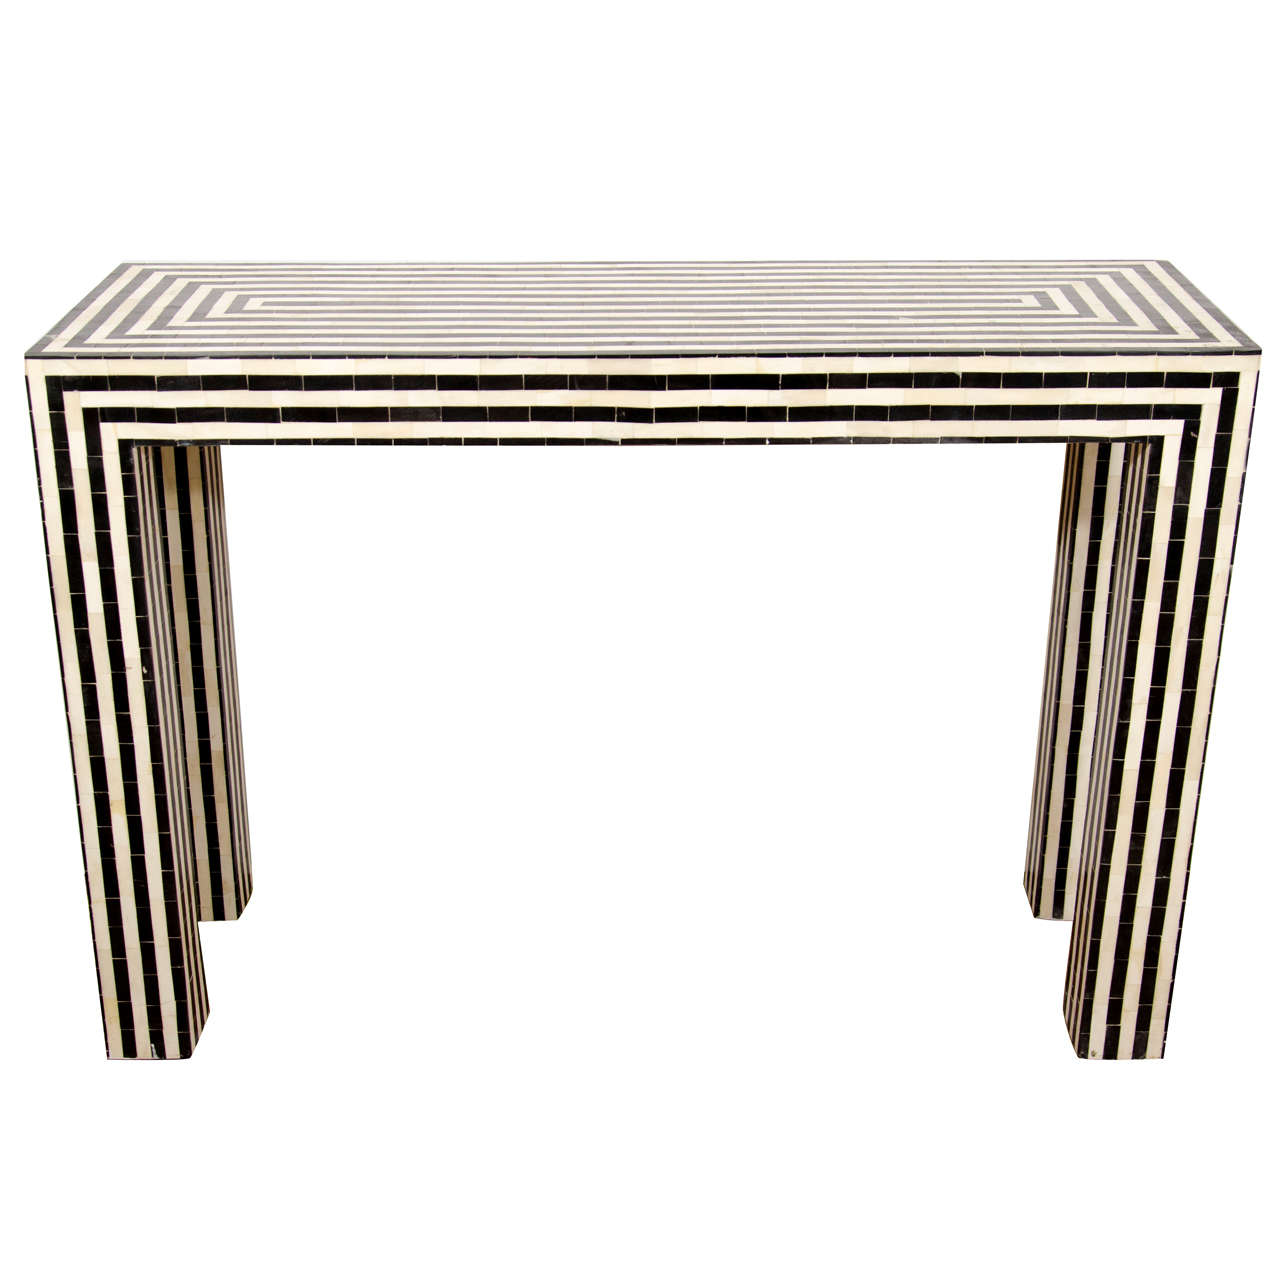 Indian Bone Inlay Black And White Striped Console At 1stdibs